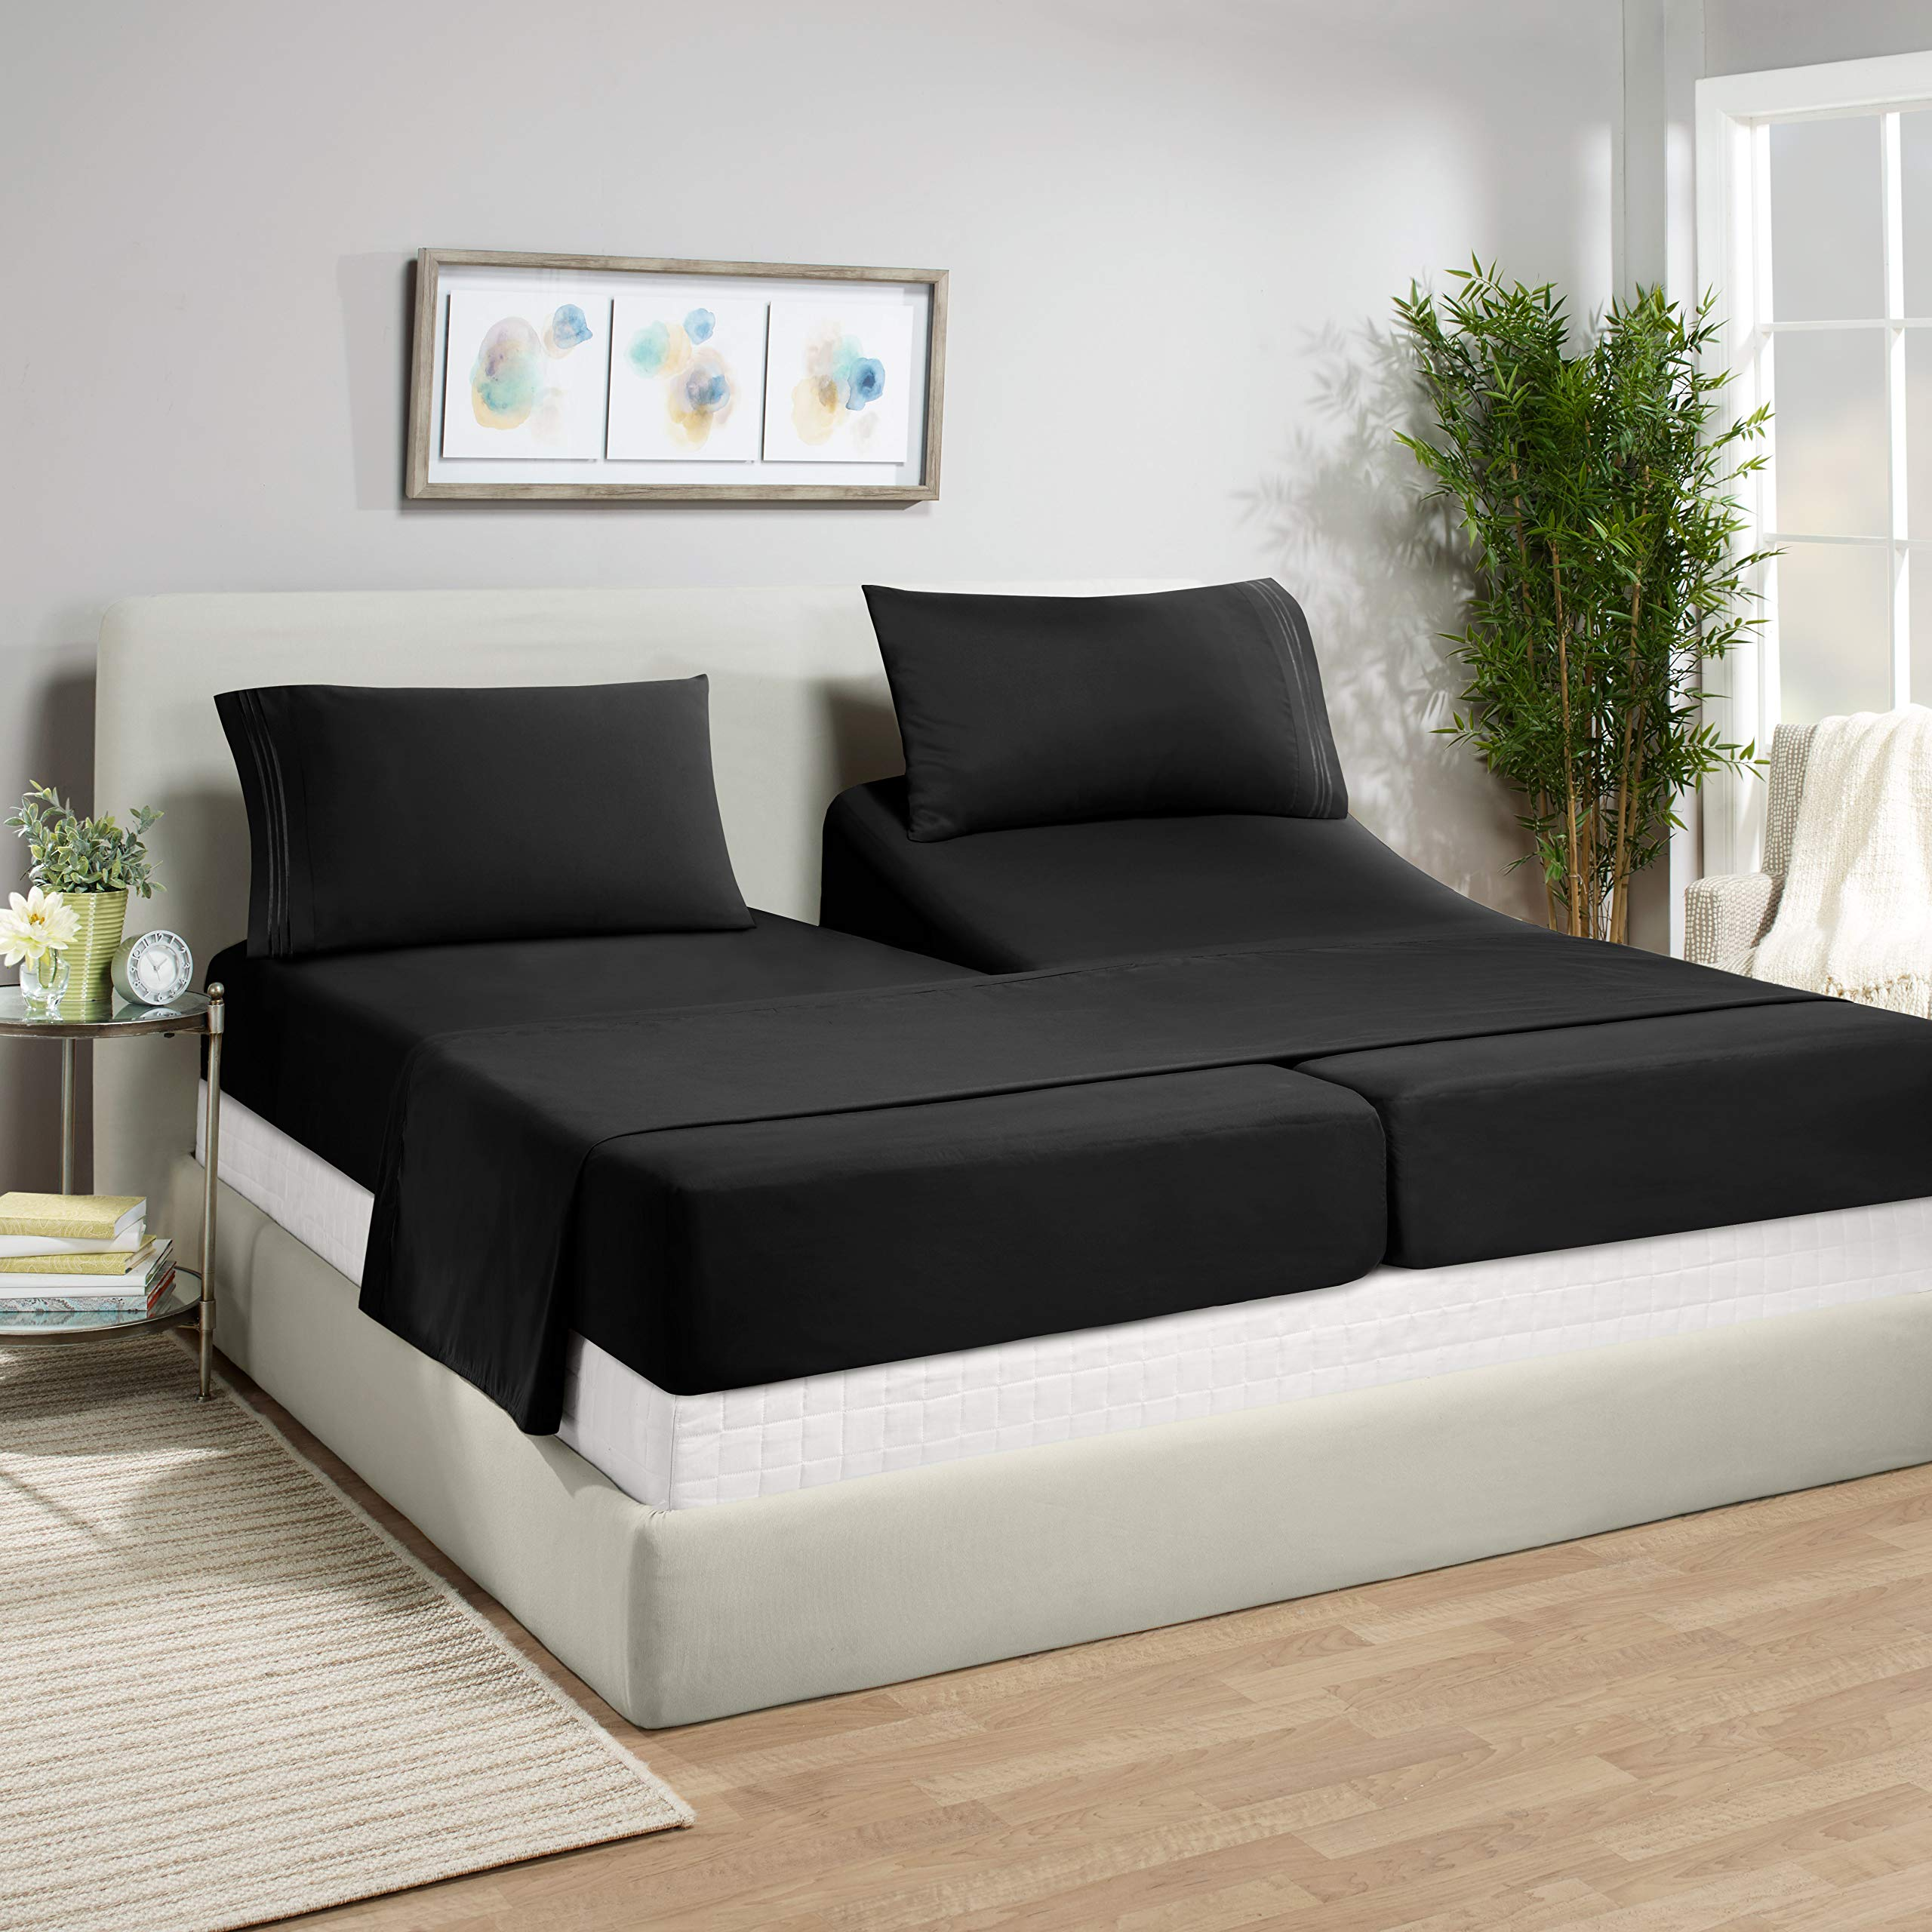 """Empyrean Bedding 14"""" - 16"""" Deep Pocket Fitted Sheet 5 Piece Set - Super Soft Double Brushed Microfiber Top Sheet - Wrinkle Free 2 Fitted Bed Sheets, 1 Flat Sheet and 2 Pillow Cases - Split King, Black"""